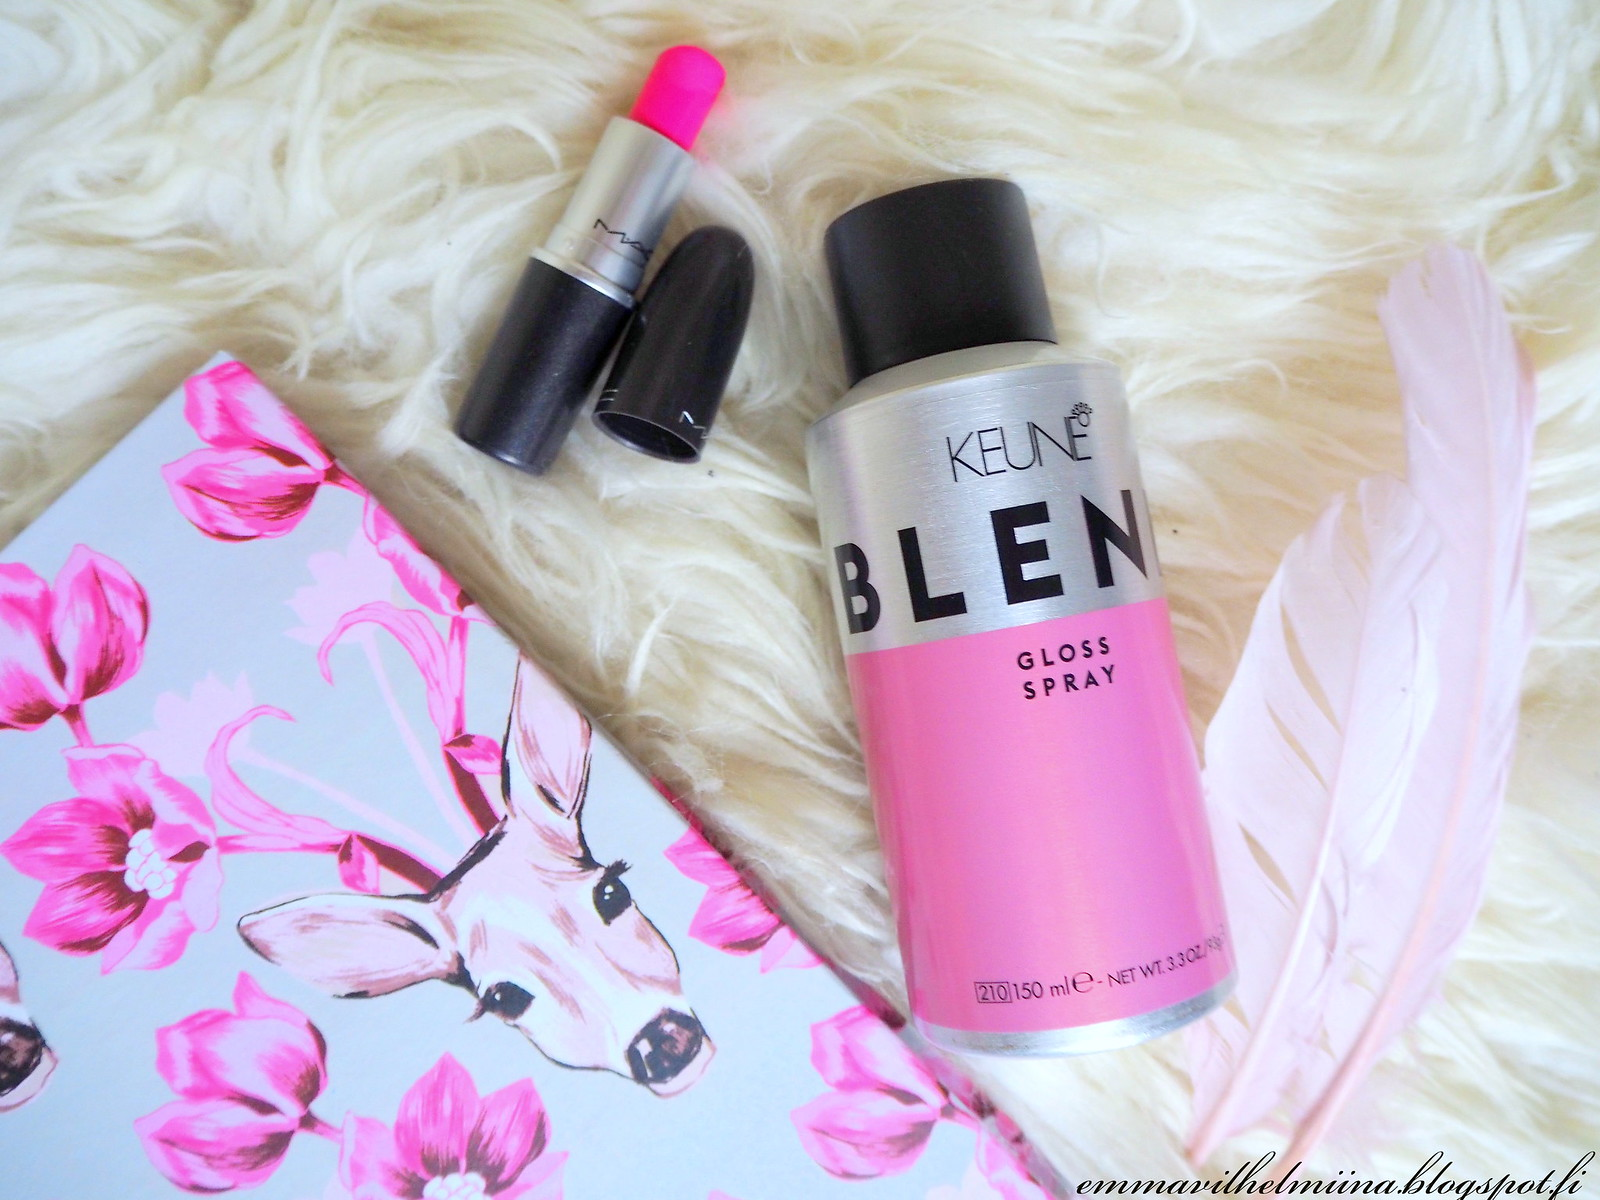 keune blend gloss spray